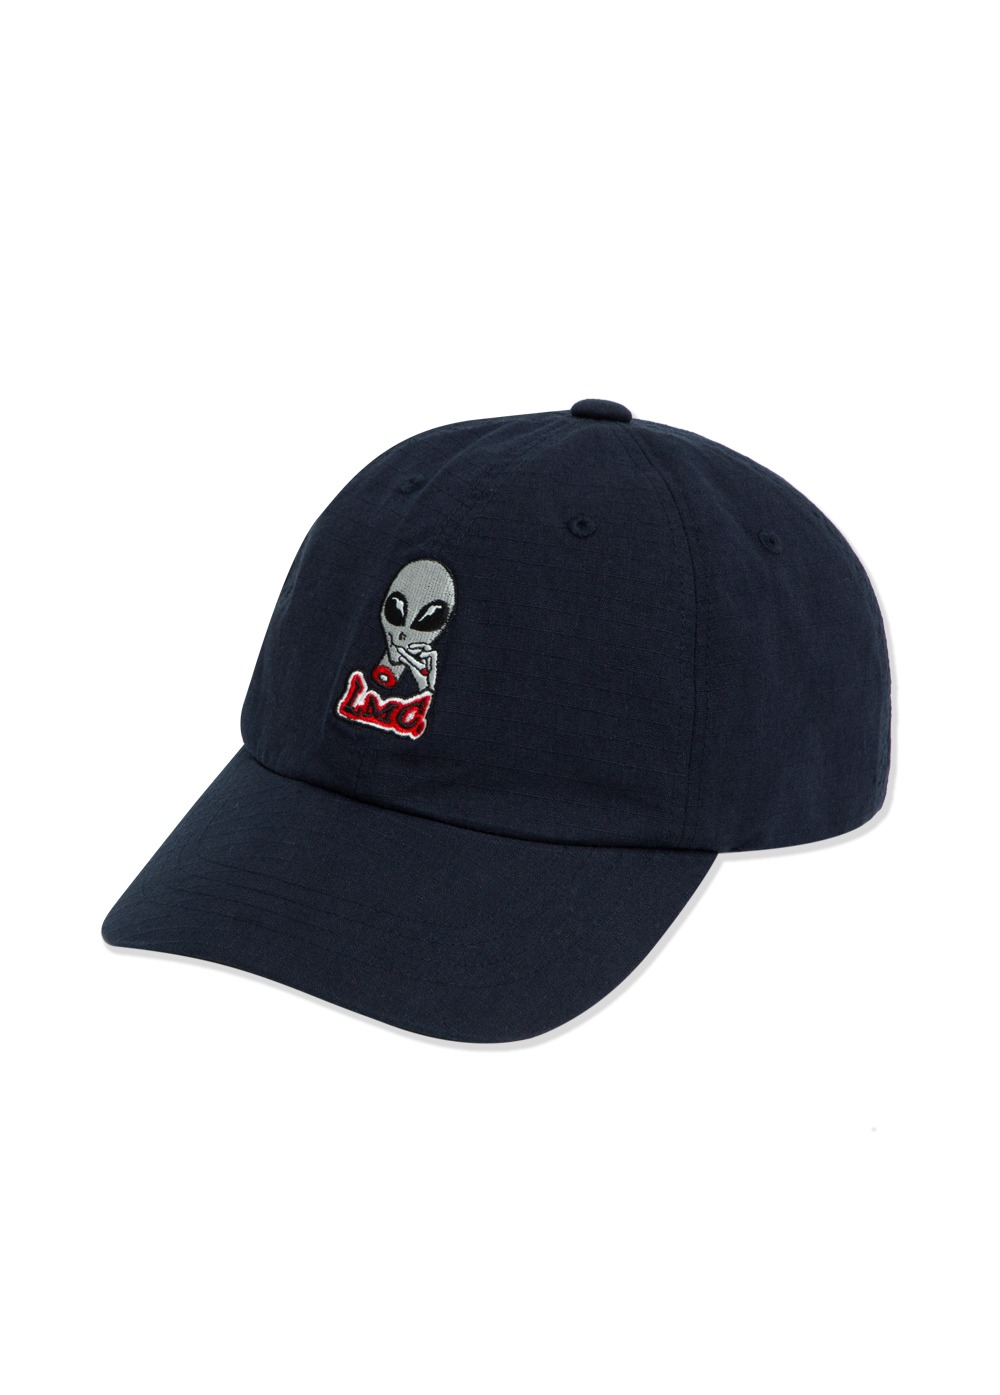 LMC RIPSTOP ALIEN 6 PANEL CAP navy